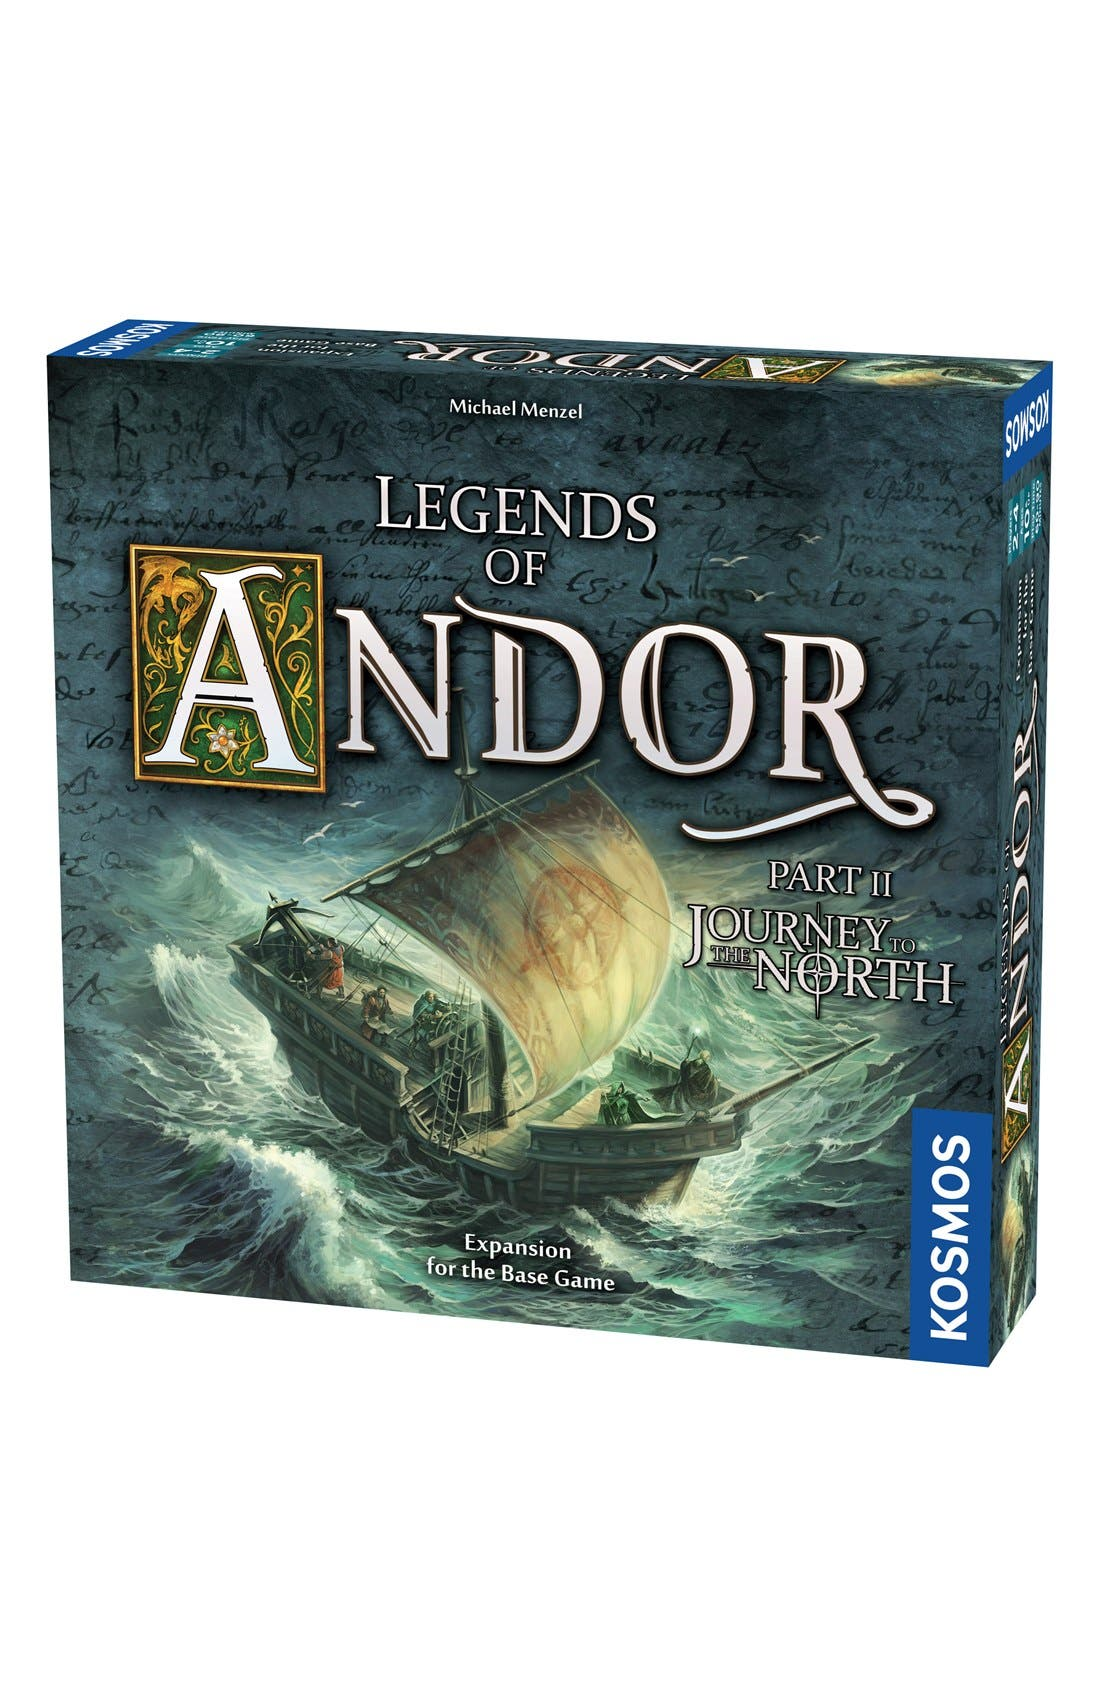 Main Image - Thames & Kosmos 'Legends of Andor - Journey' Game Expansion Pack